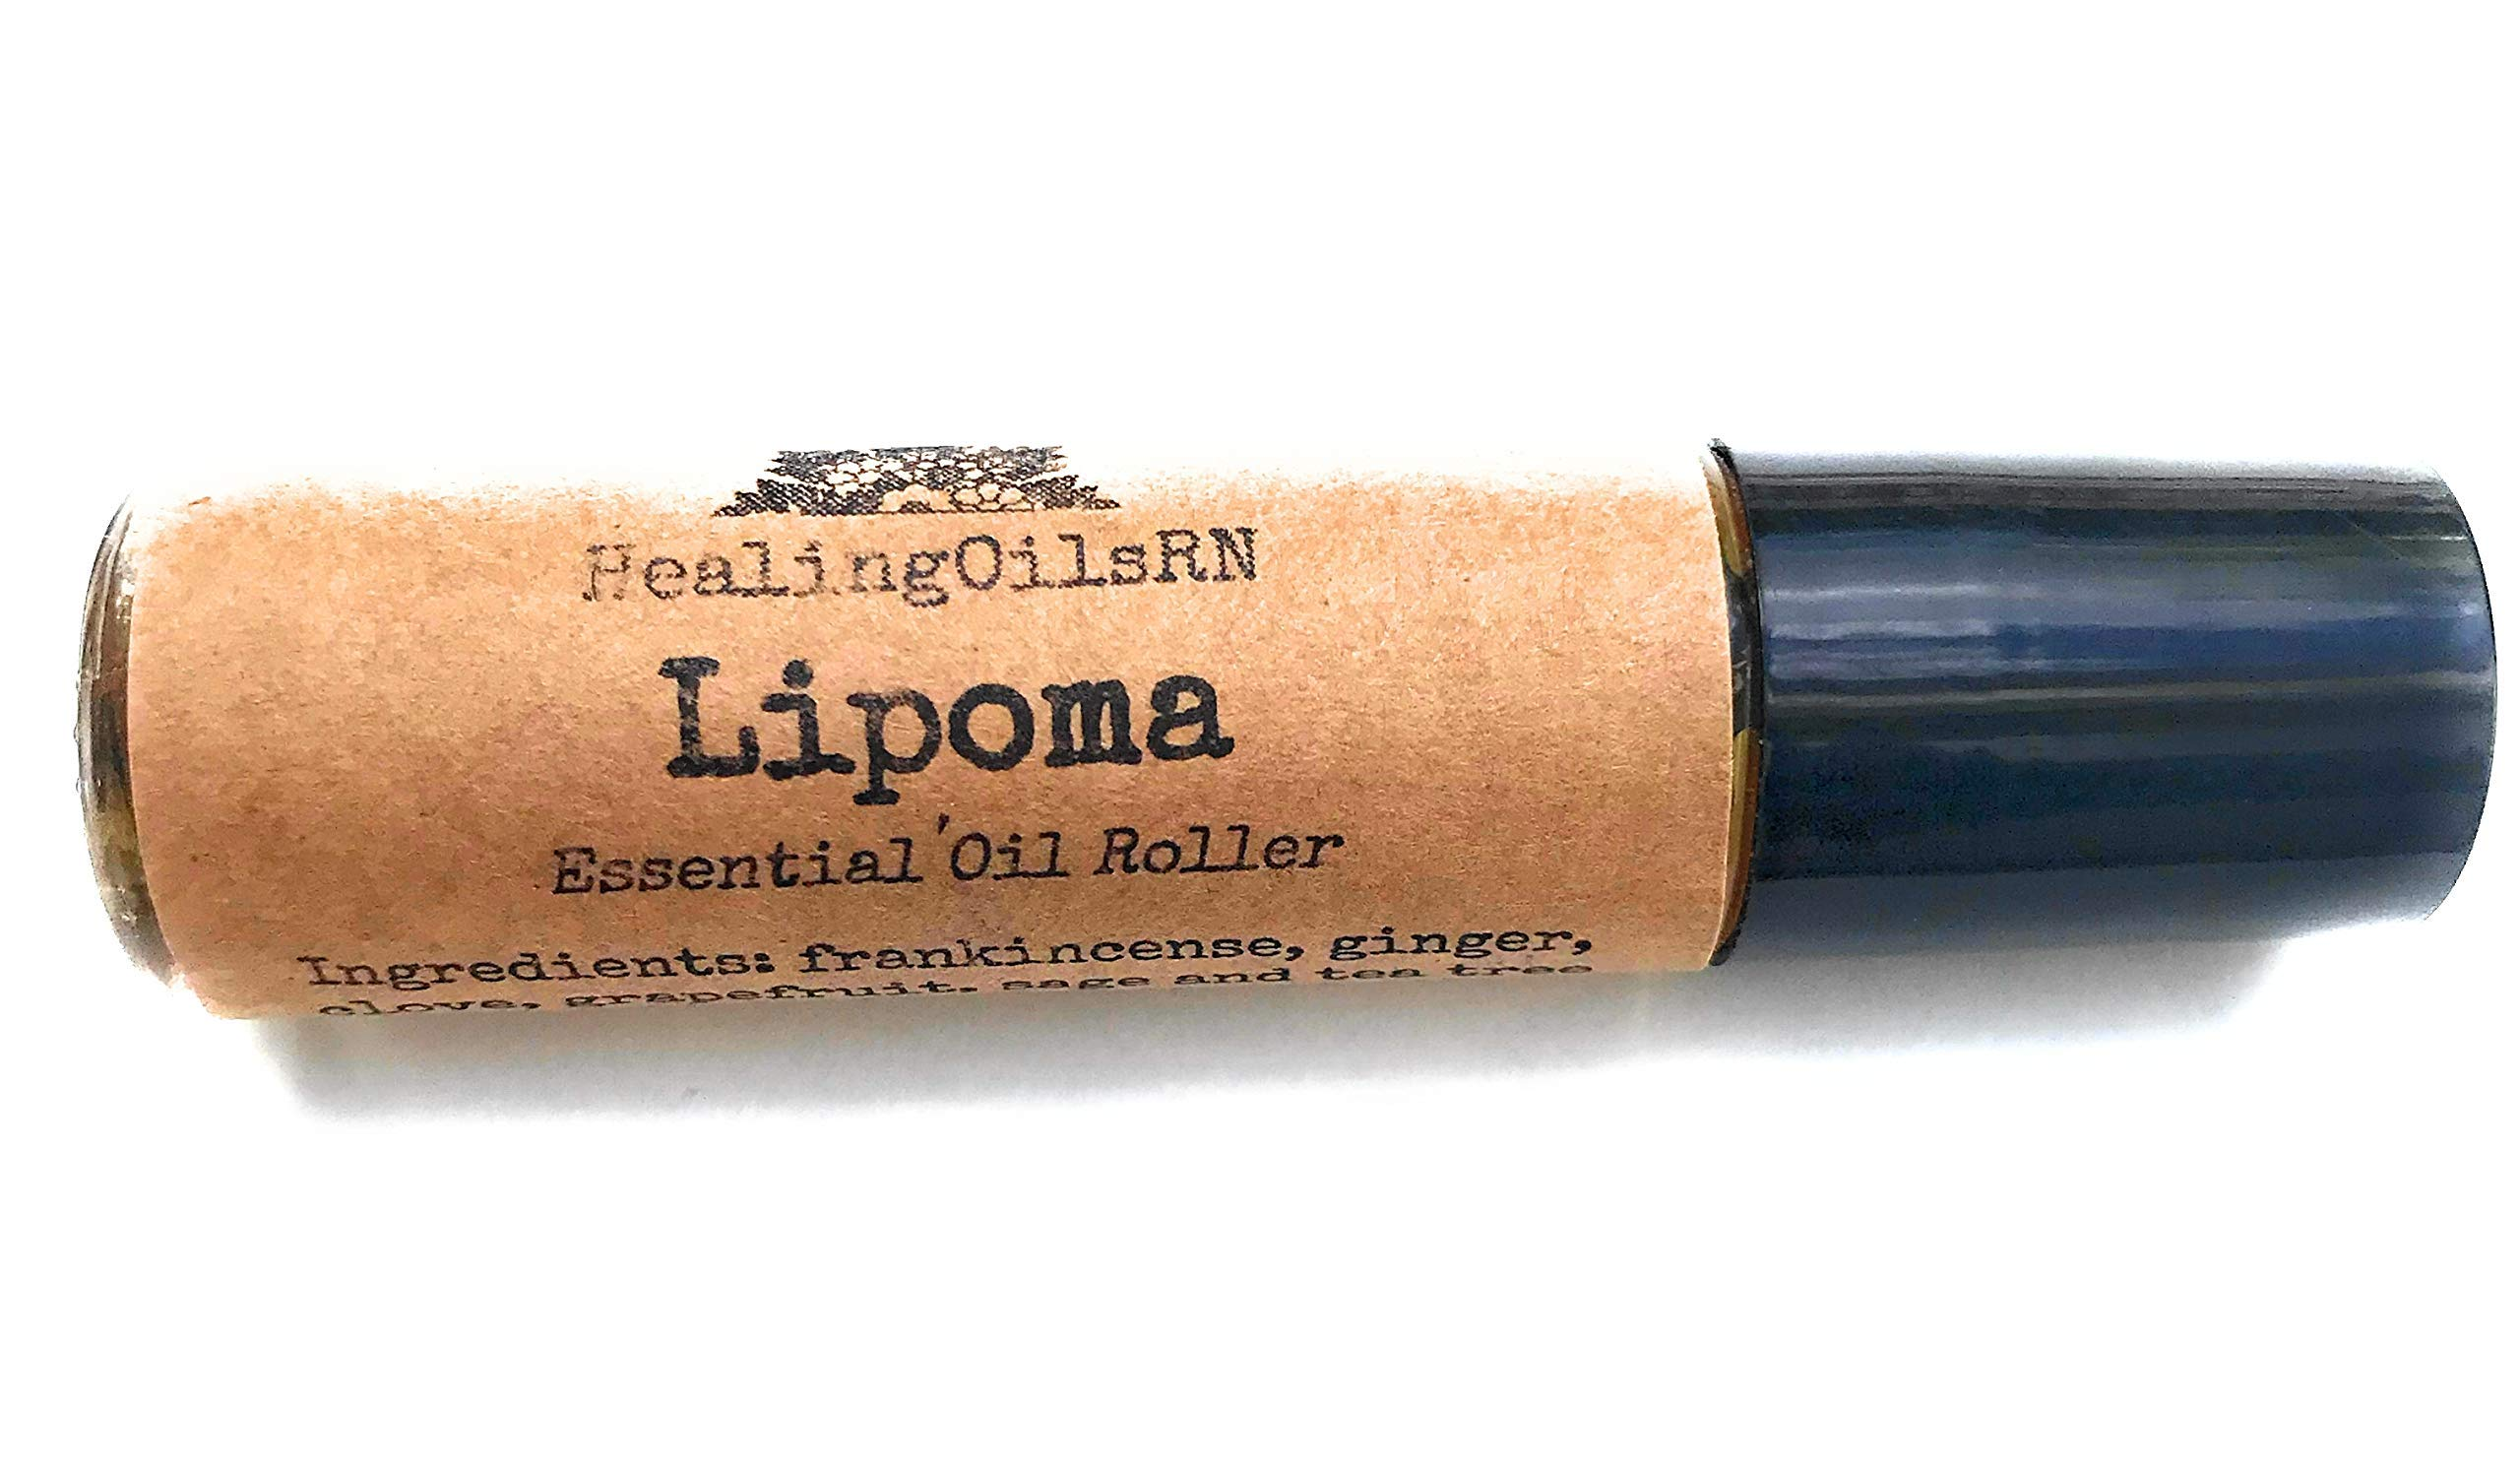 Lipoma fatty tumor essential oil roll-on blend roller 10 ml 100% therapeutic grade and pure by HealingoilsRN LLC